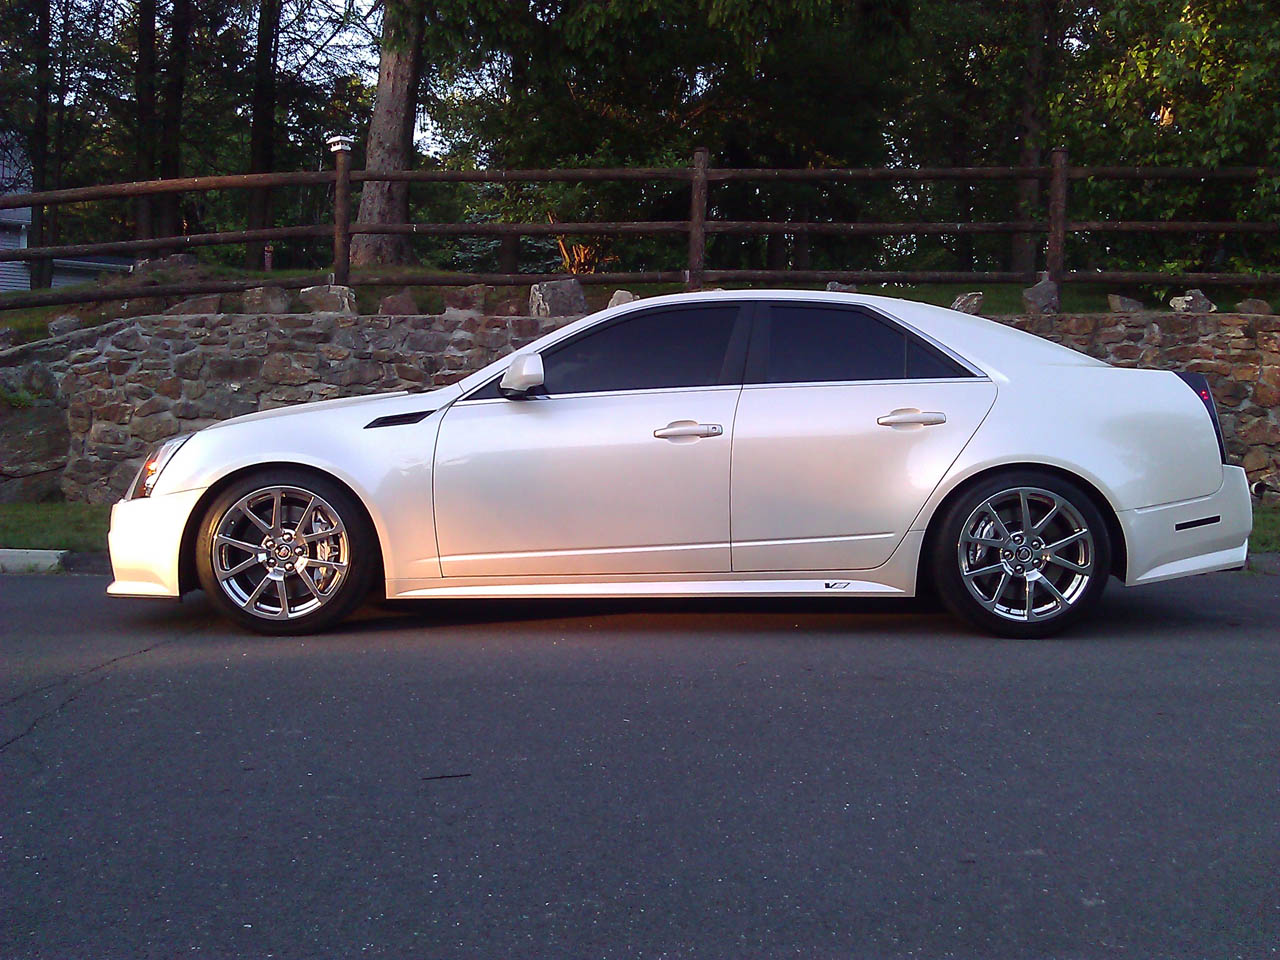 2009 White Cadillac CTS-V Pictures, Mods, Upgrades ...